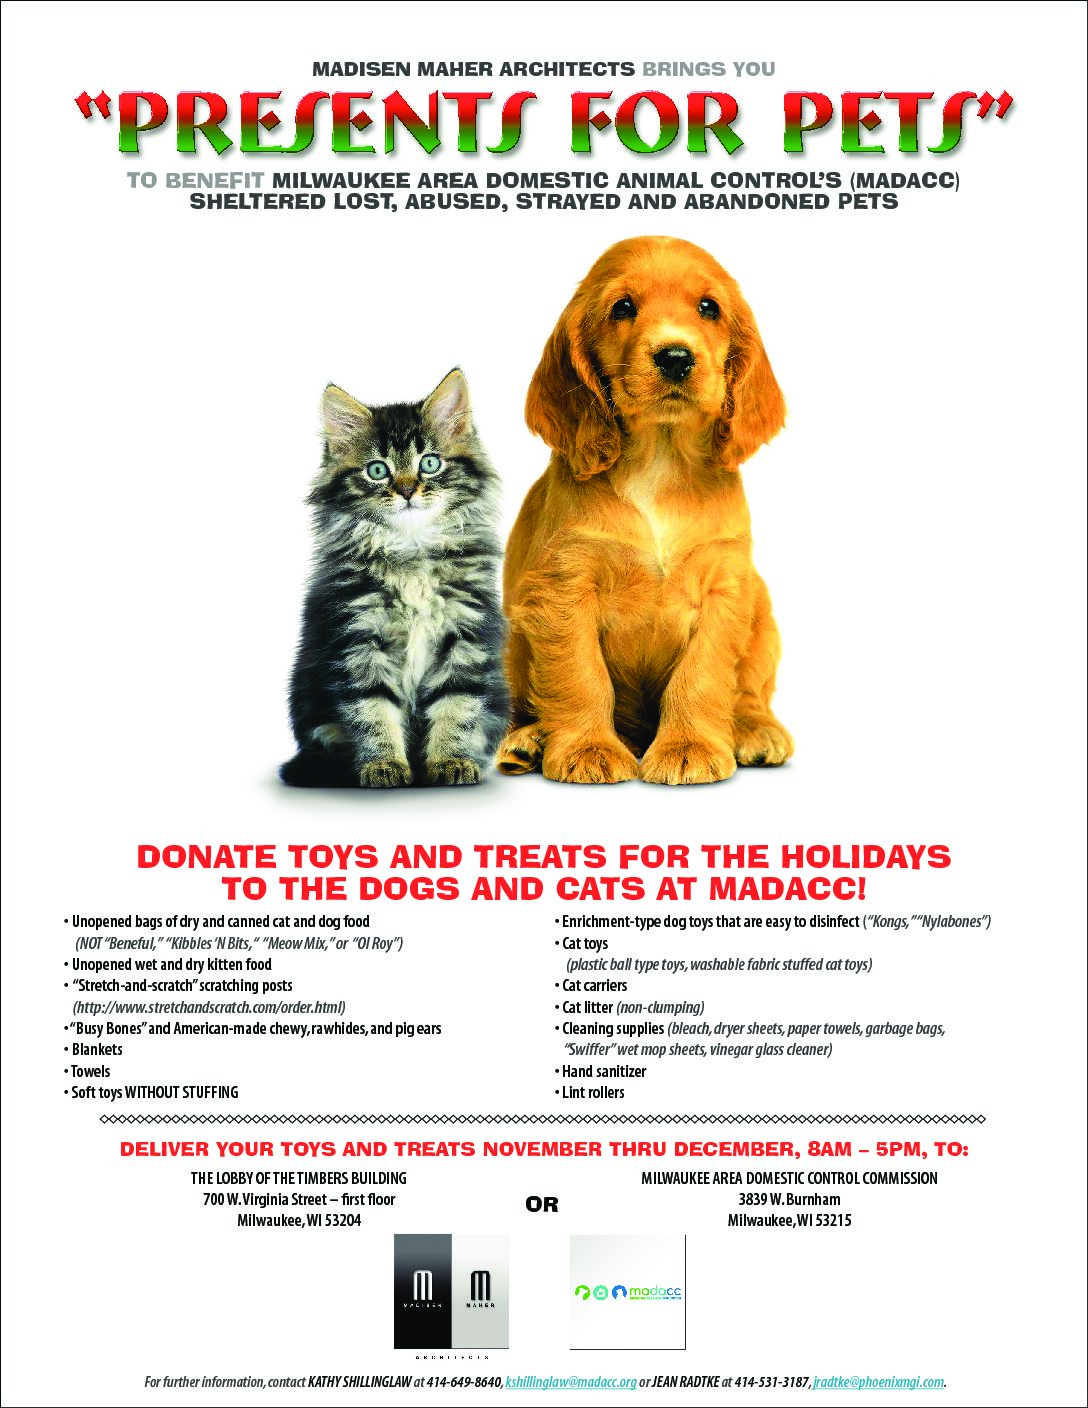 "MMA brings you ""Presents for Pets"" to benefit MADACC"